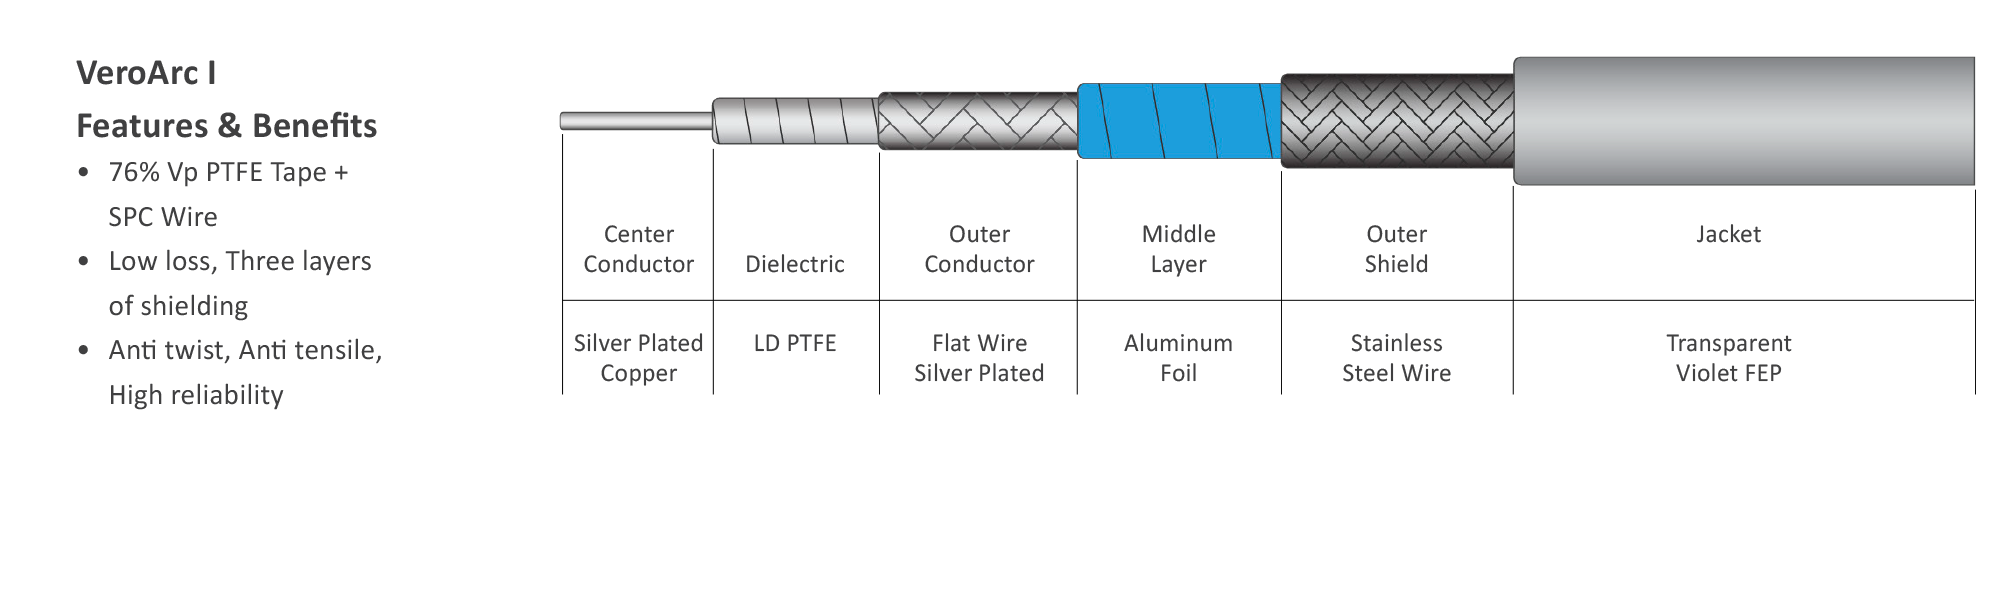 Continuum Technologies - Vero RF Cable Series - veroARC - Cable Structure VeroArc I